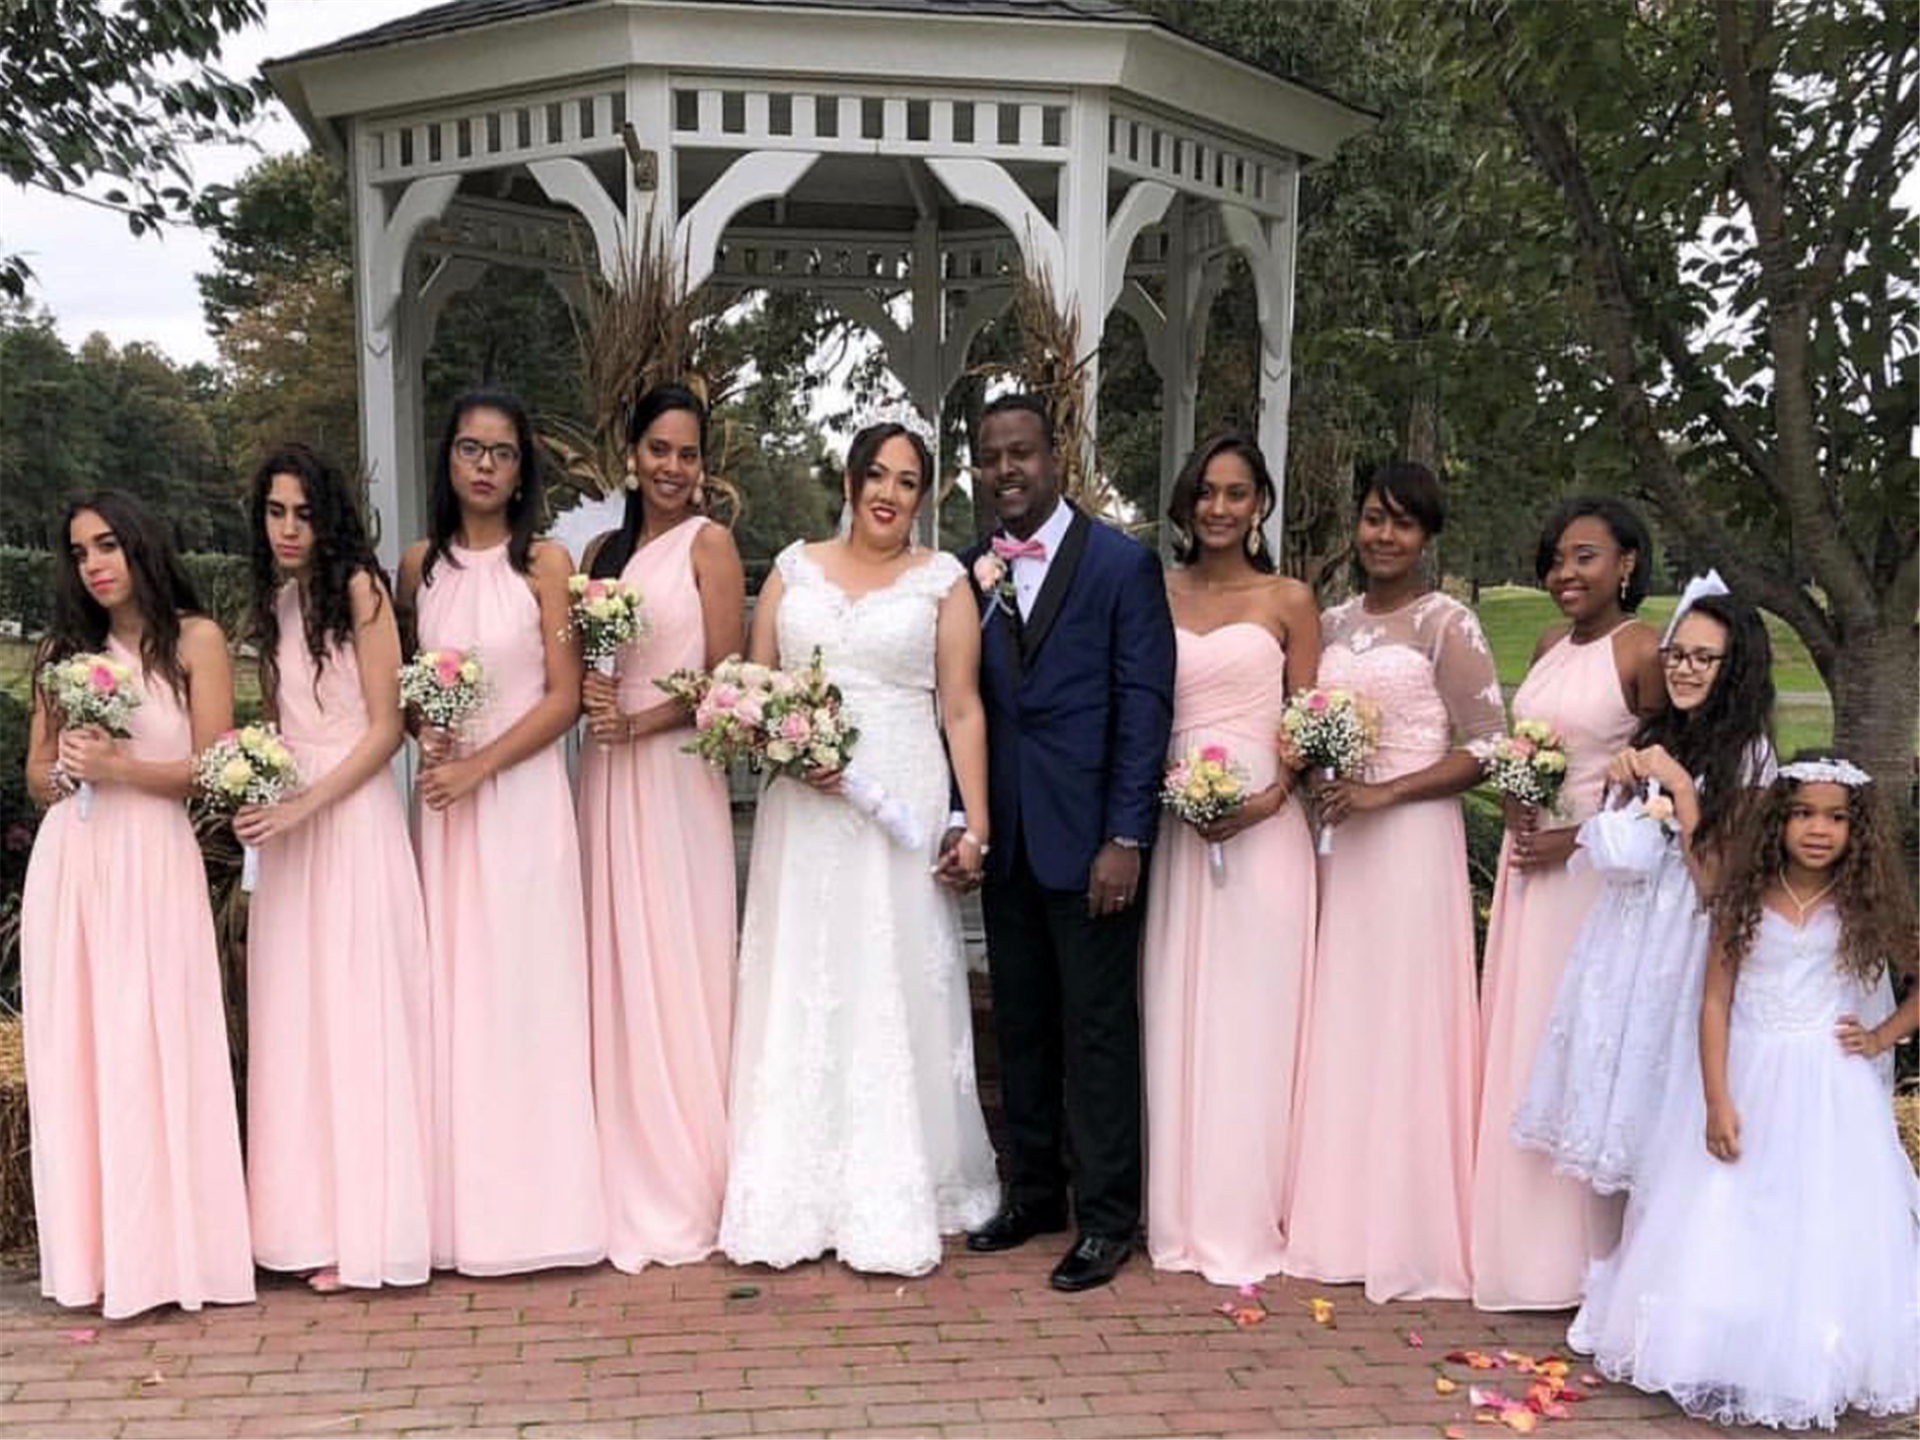 husband and wife standing with bridesmaids